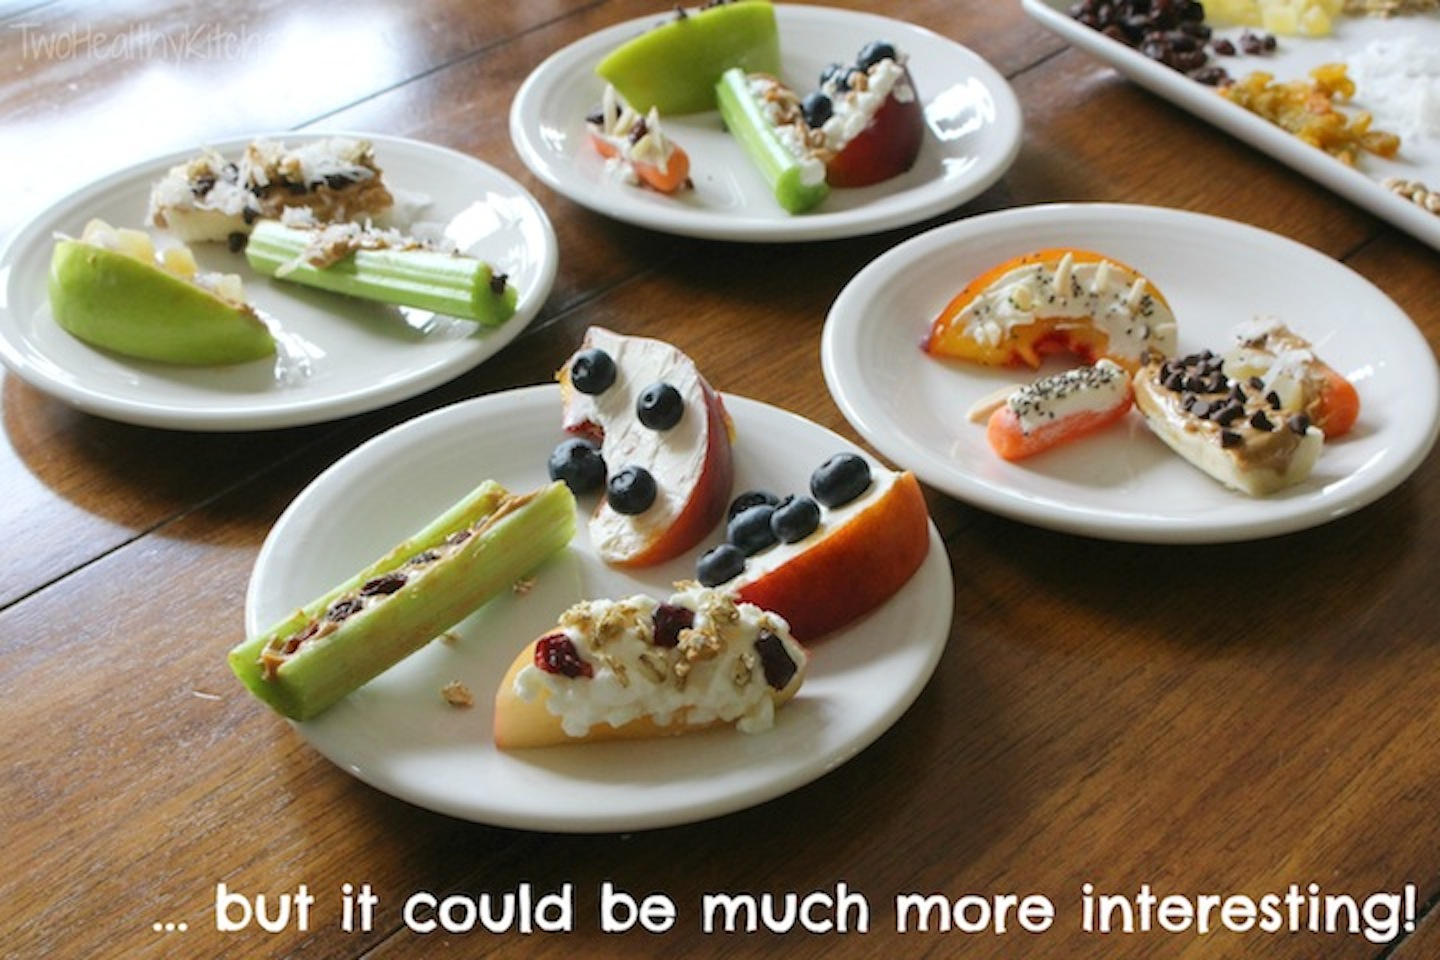 Ants on a Log 2.0 Recipe {www.TwoHealthyKitchens.com}